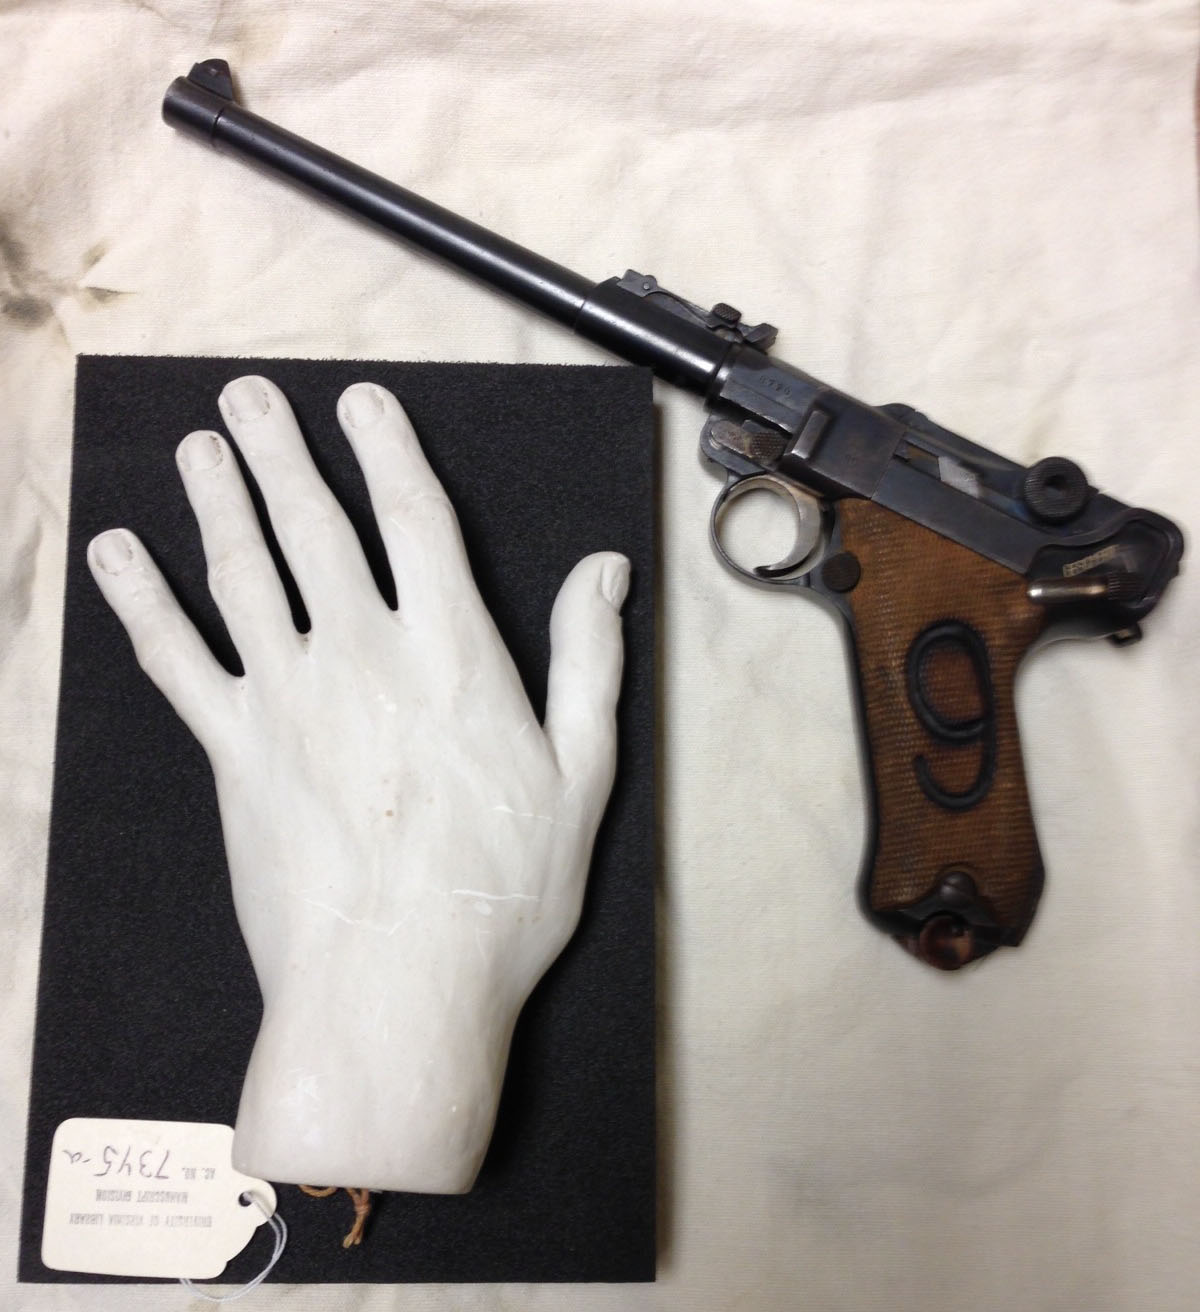 Mold of John Powell's hand and German Luger, 1917 (Image by Caroline Newcomb)